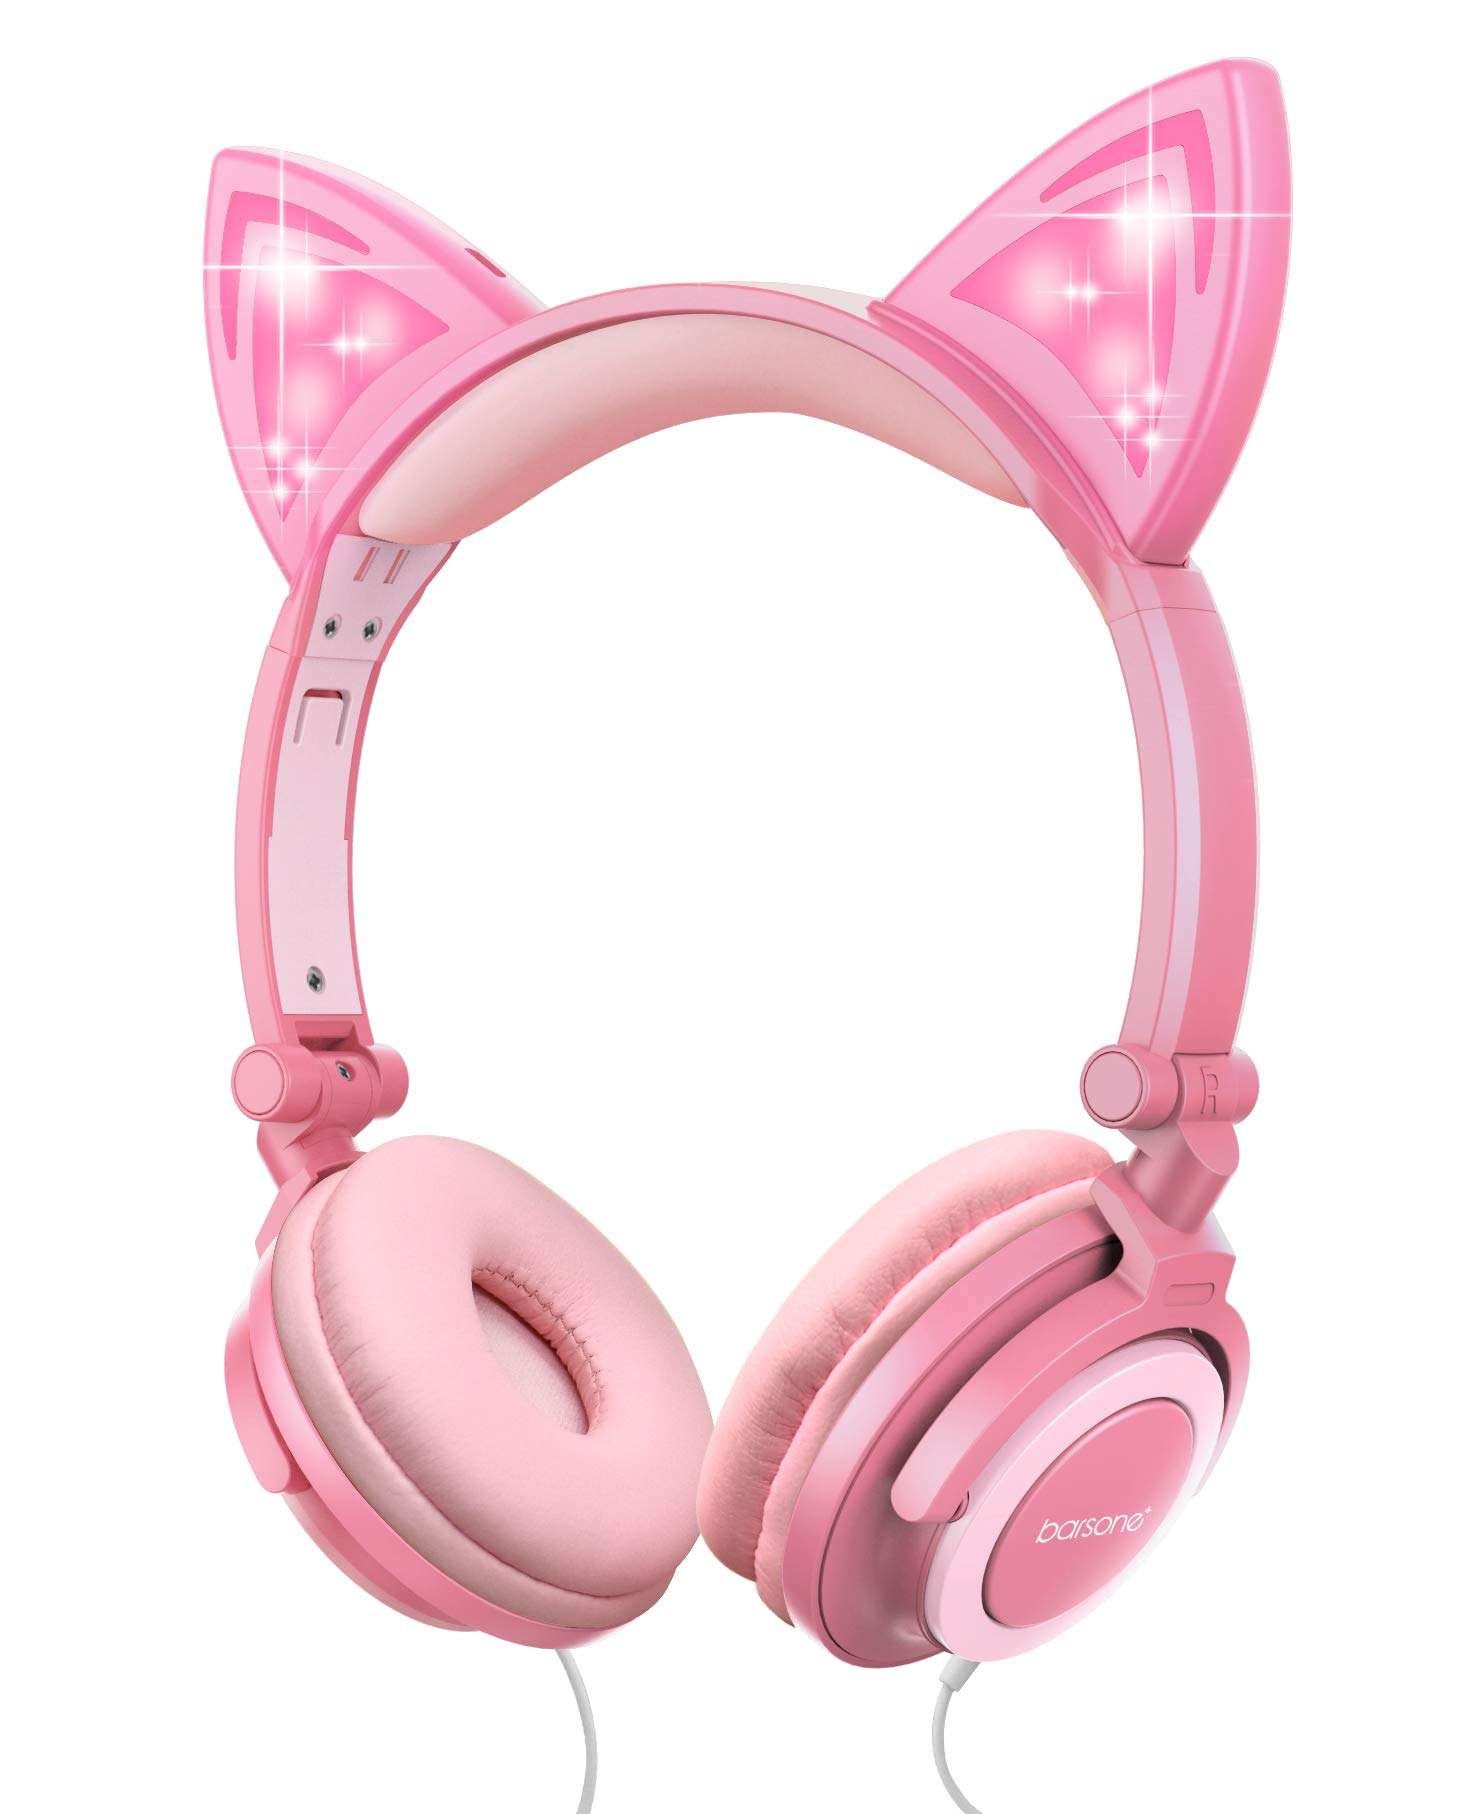 Kids Cat Ear Headphones for Girls Tablet School Supplies Gifts, Light Up Wired Adjustable Kids Headphones Foldable Over Ear Game Headset for Travel Birthday Christmas(Peach)